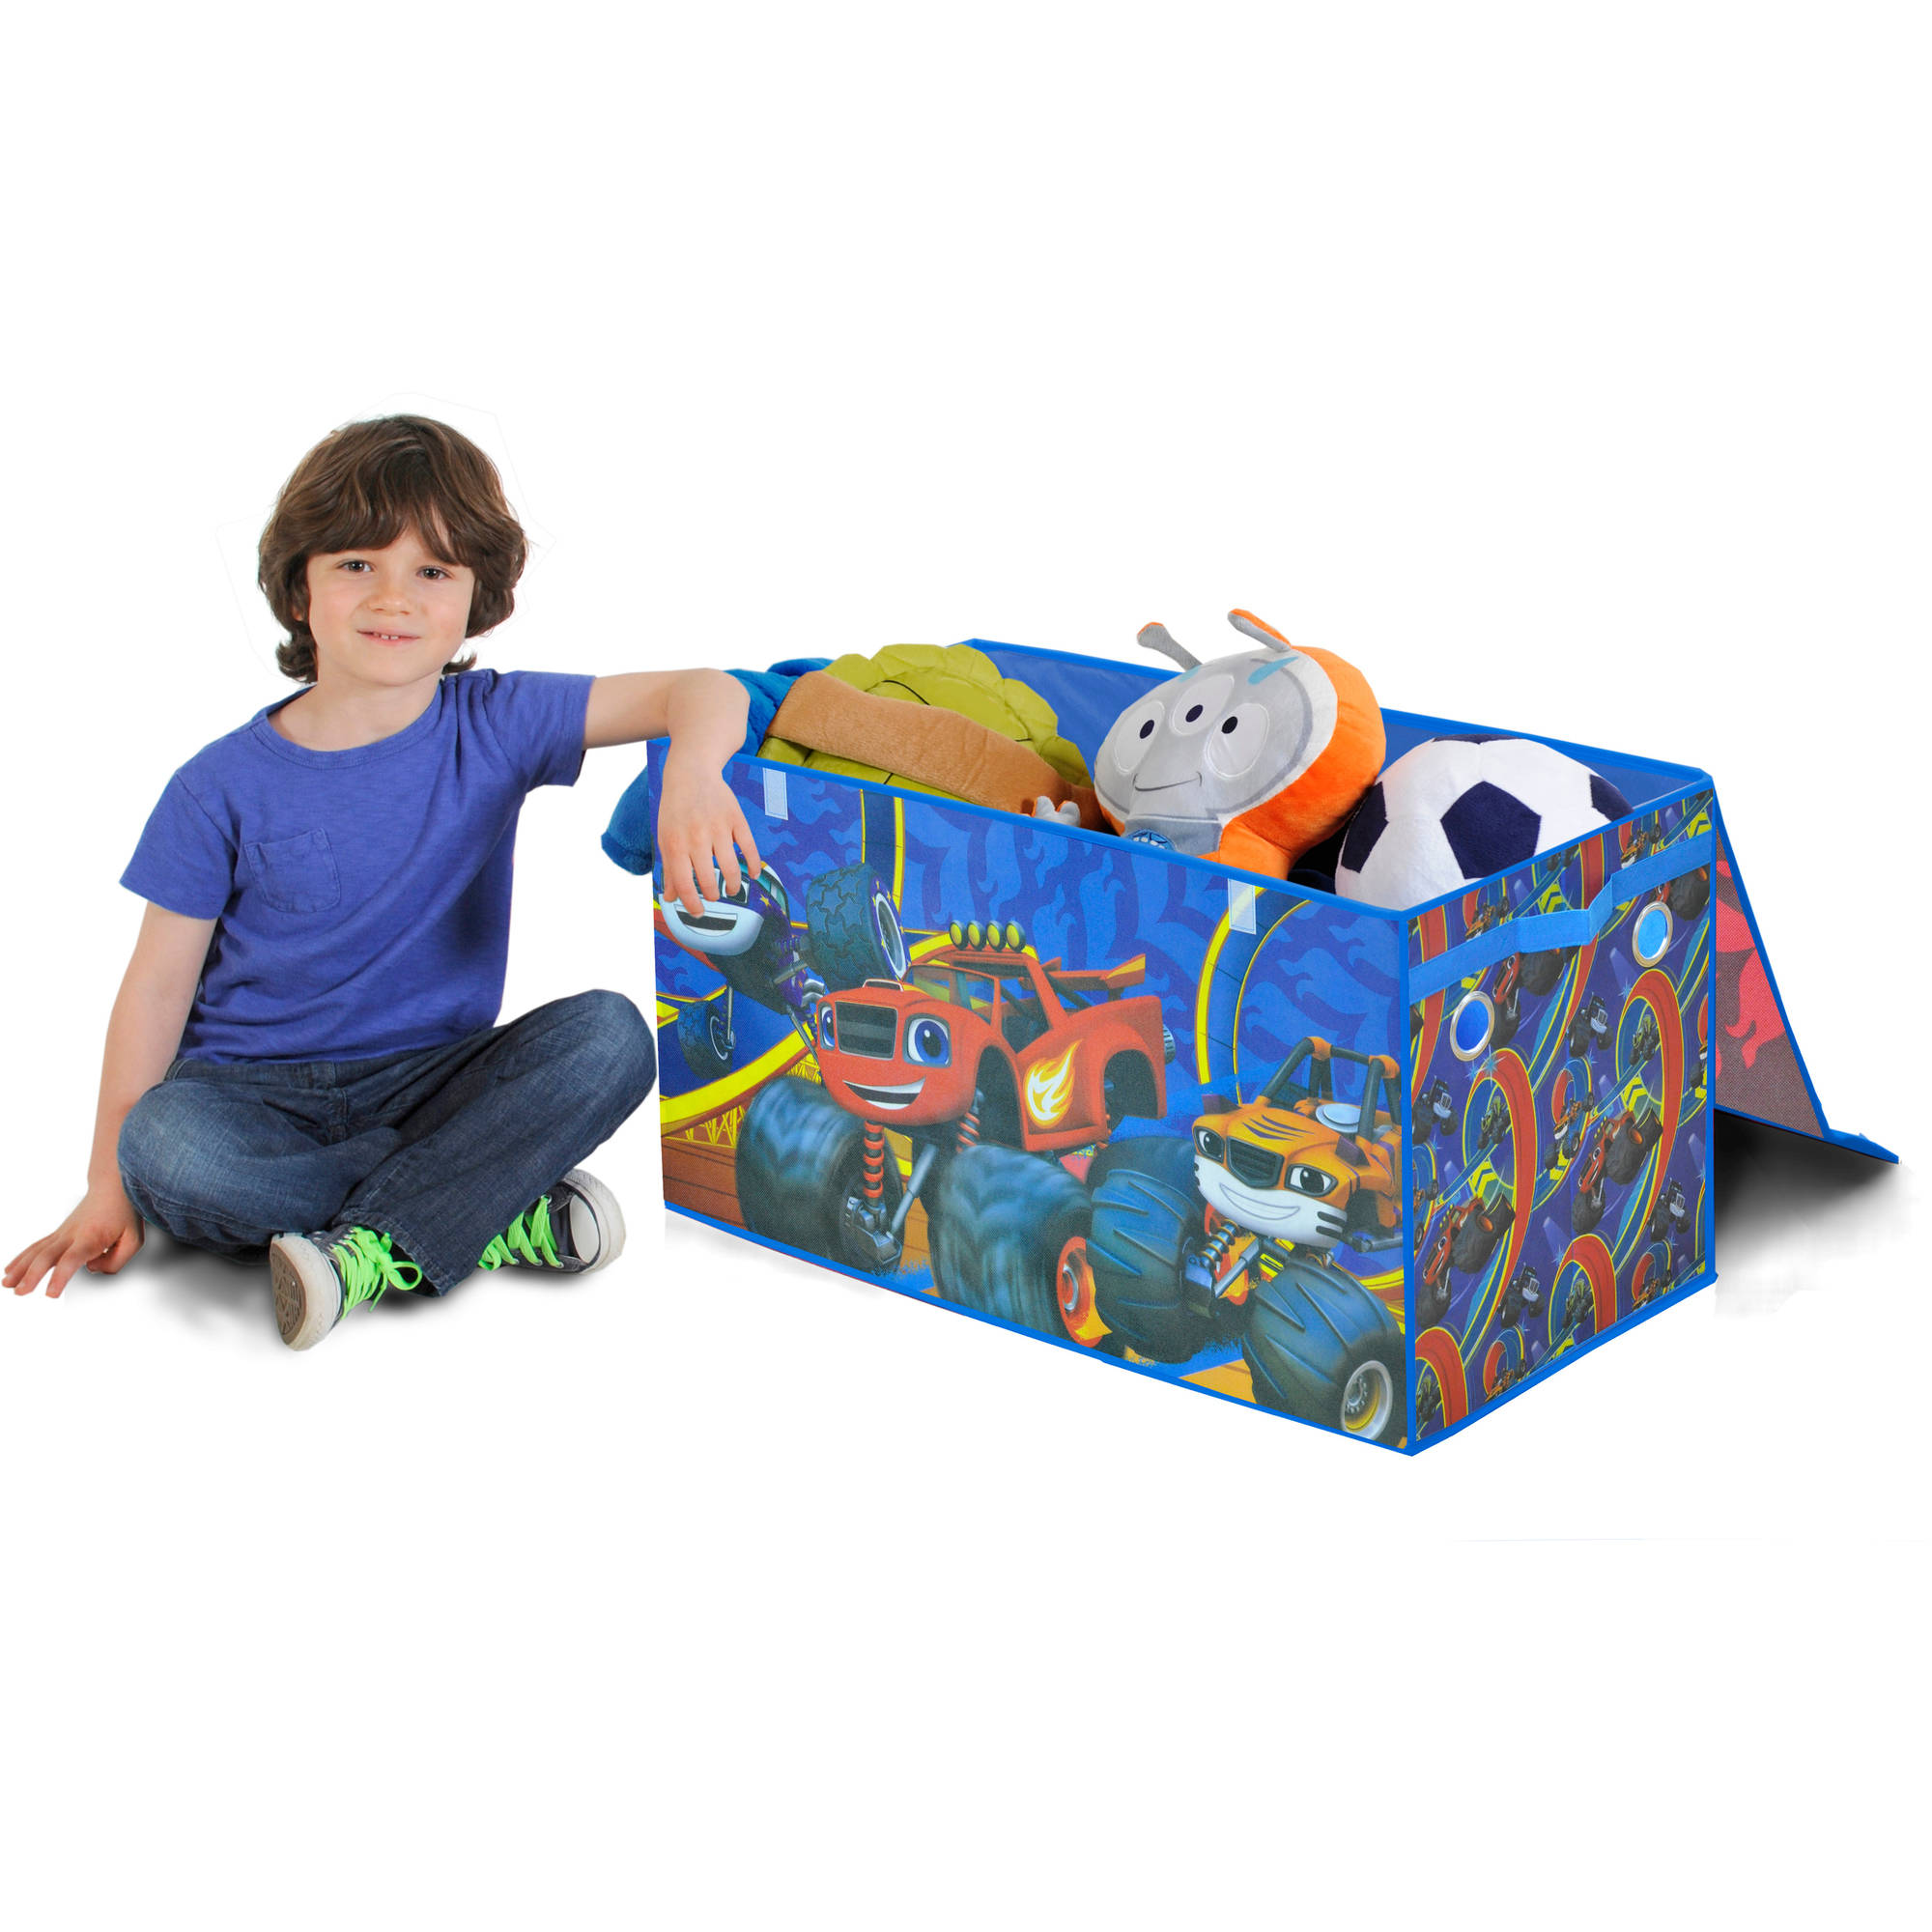 Nickelodeon Blaze and The Monster Machines Oversized Soft Collapsible Storage Toy Trunk